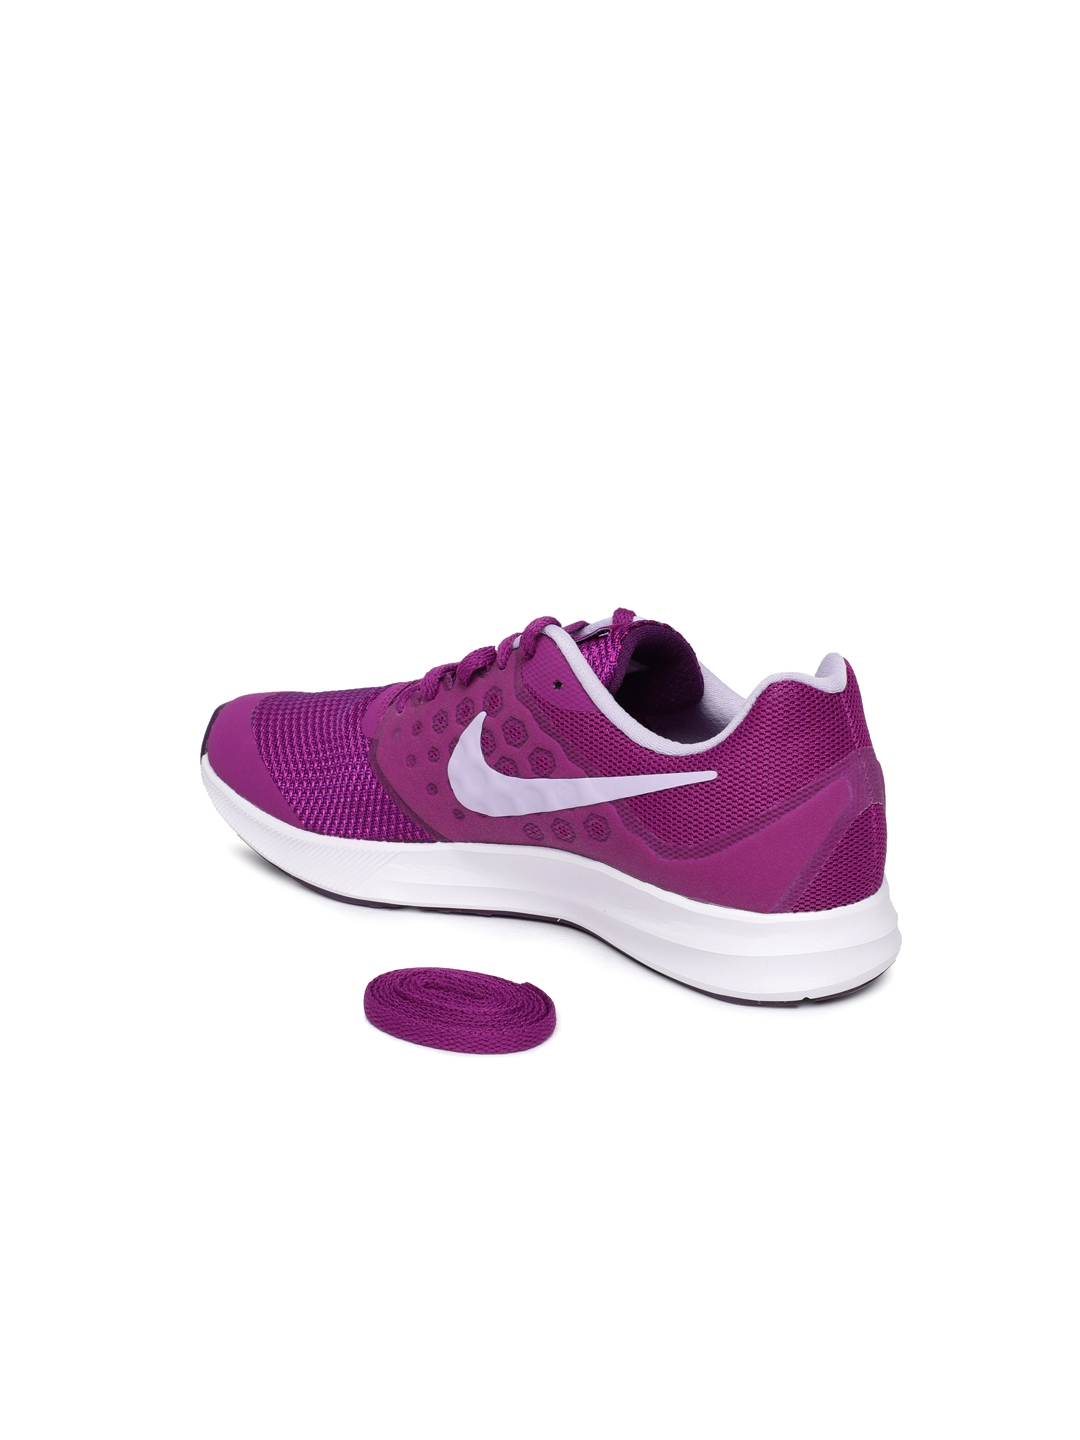 00ffbf65d17b Buy Nike Girls Purple Downshifter 7 Running Shoes - Sports Shoes for ...